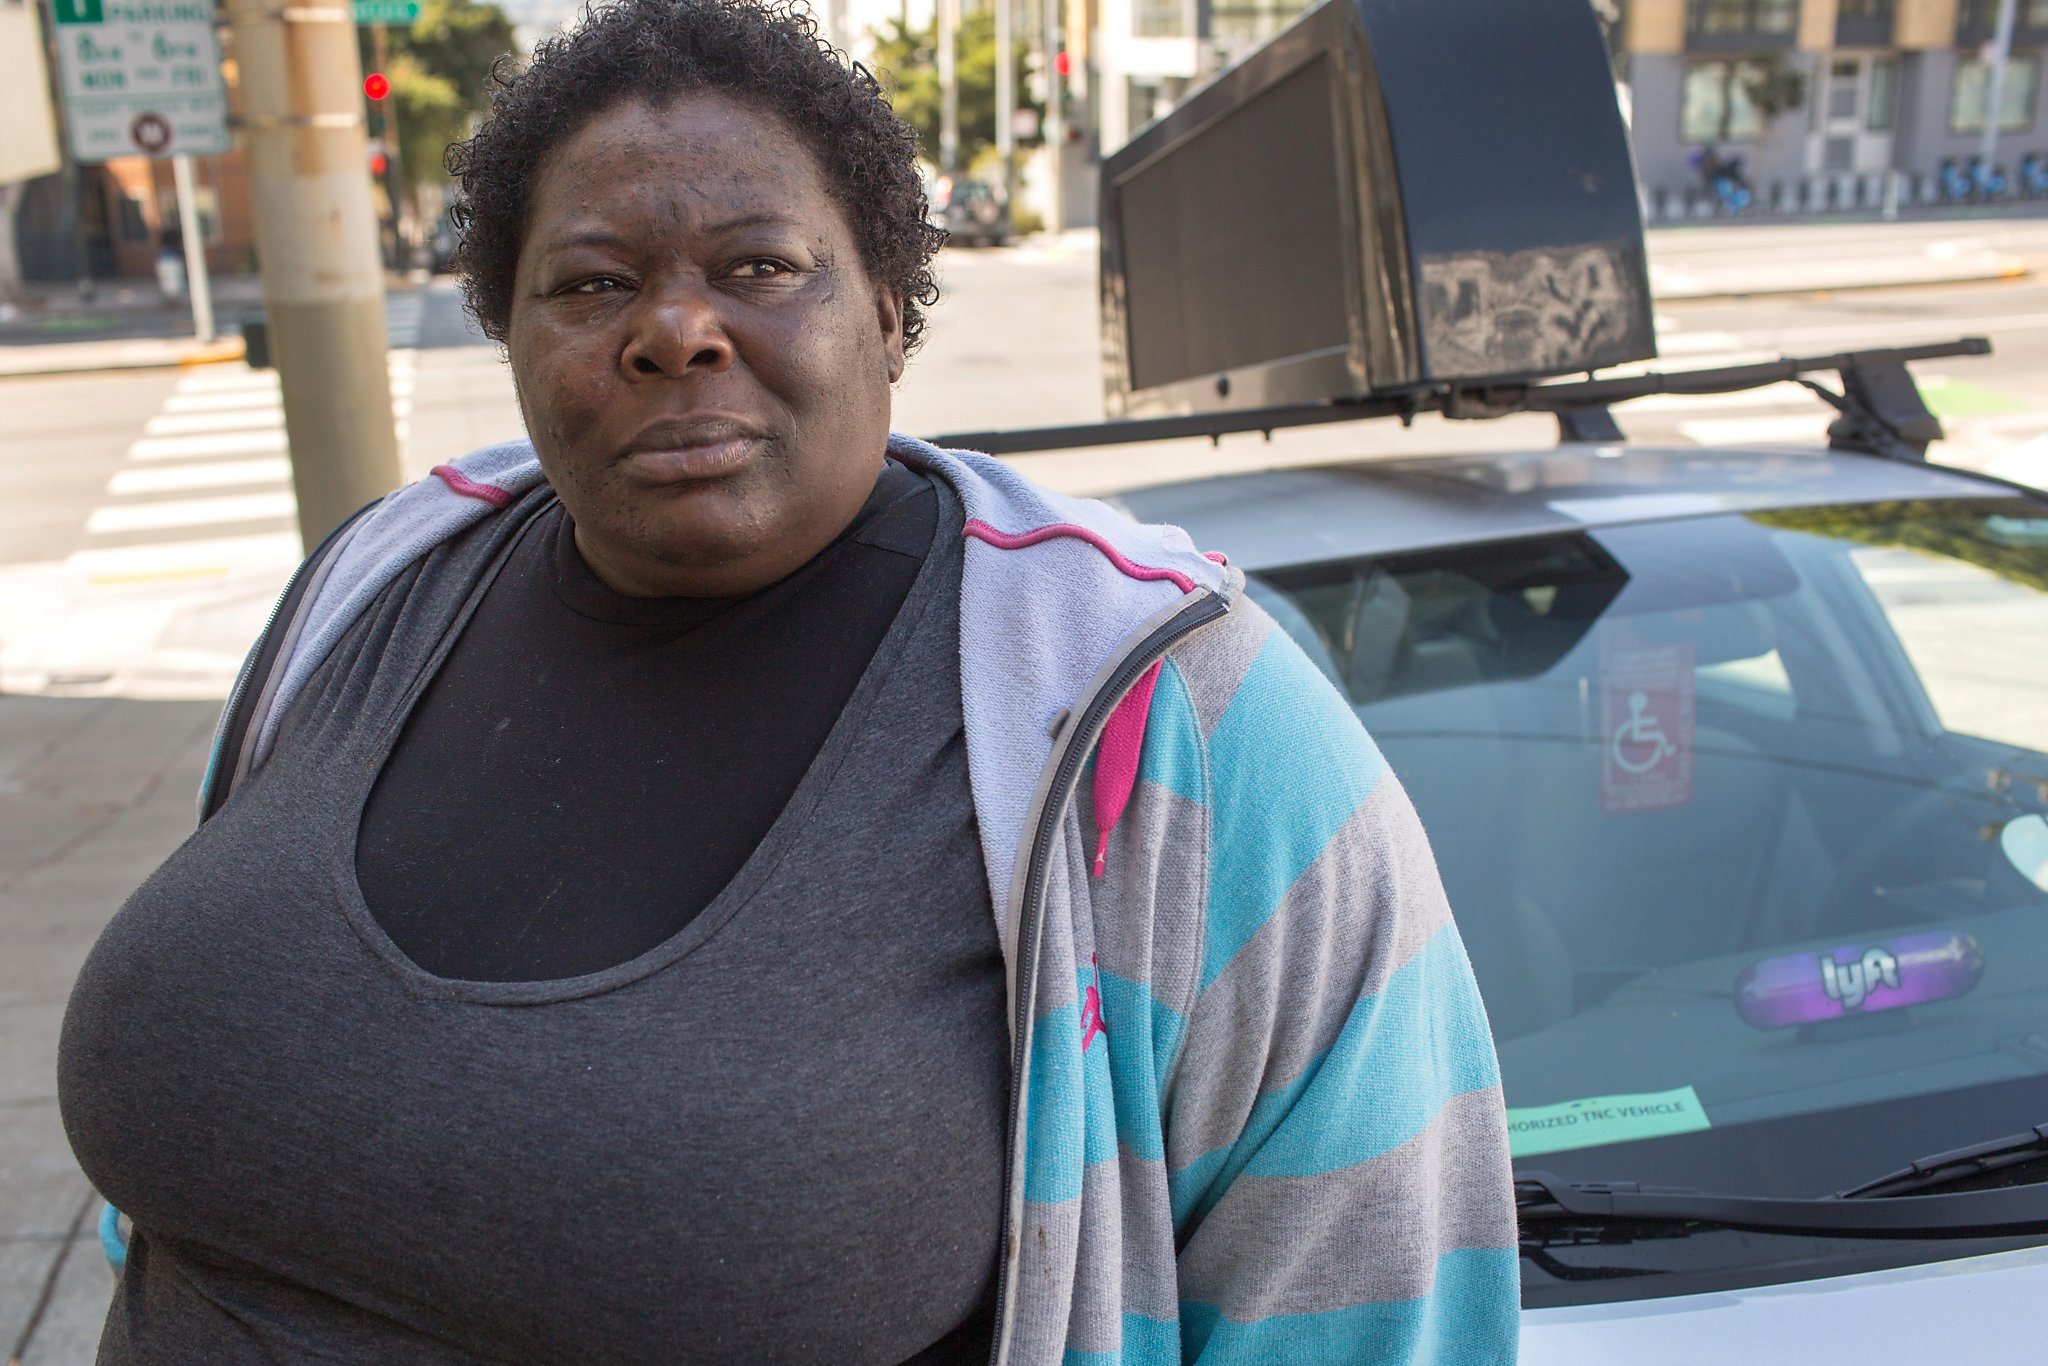 Uber, Lyft drivers fear getting booted from work